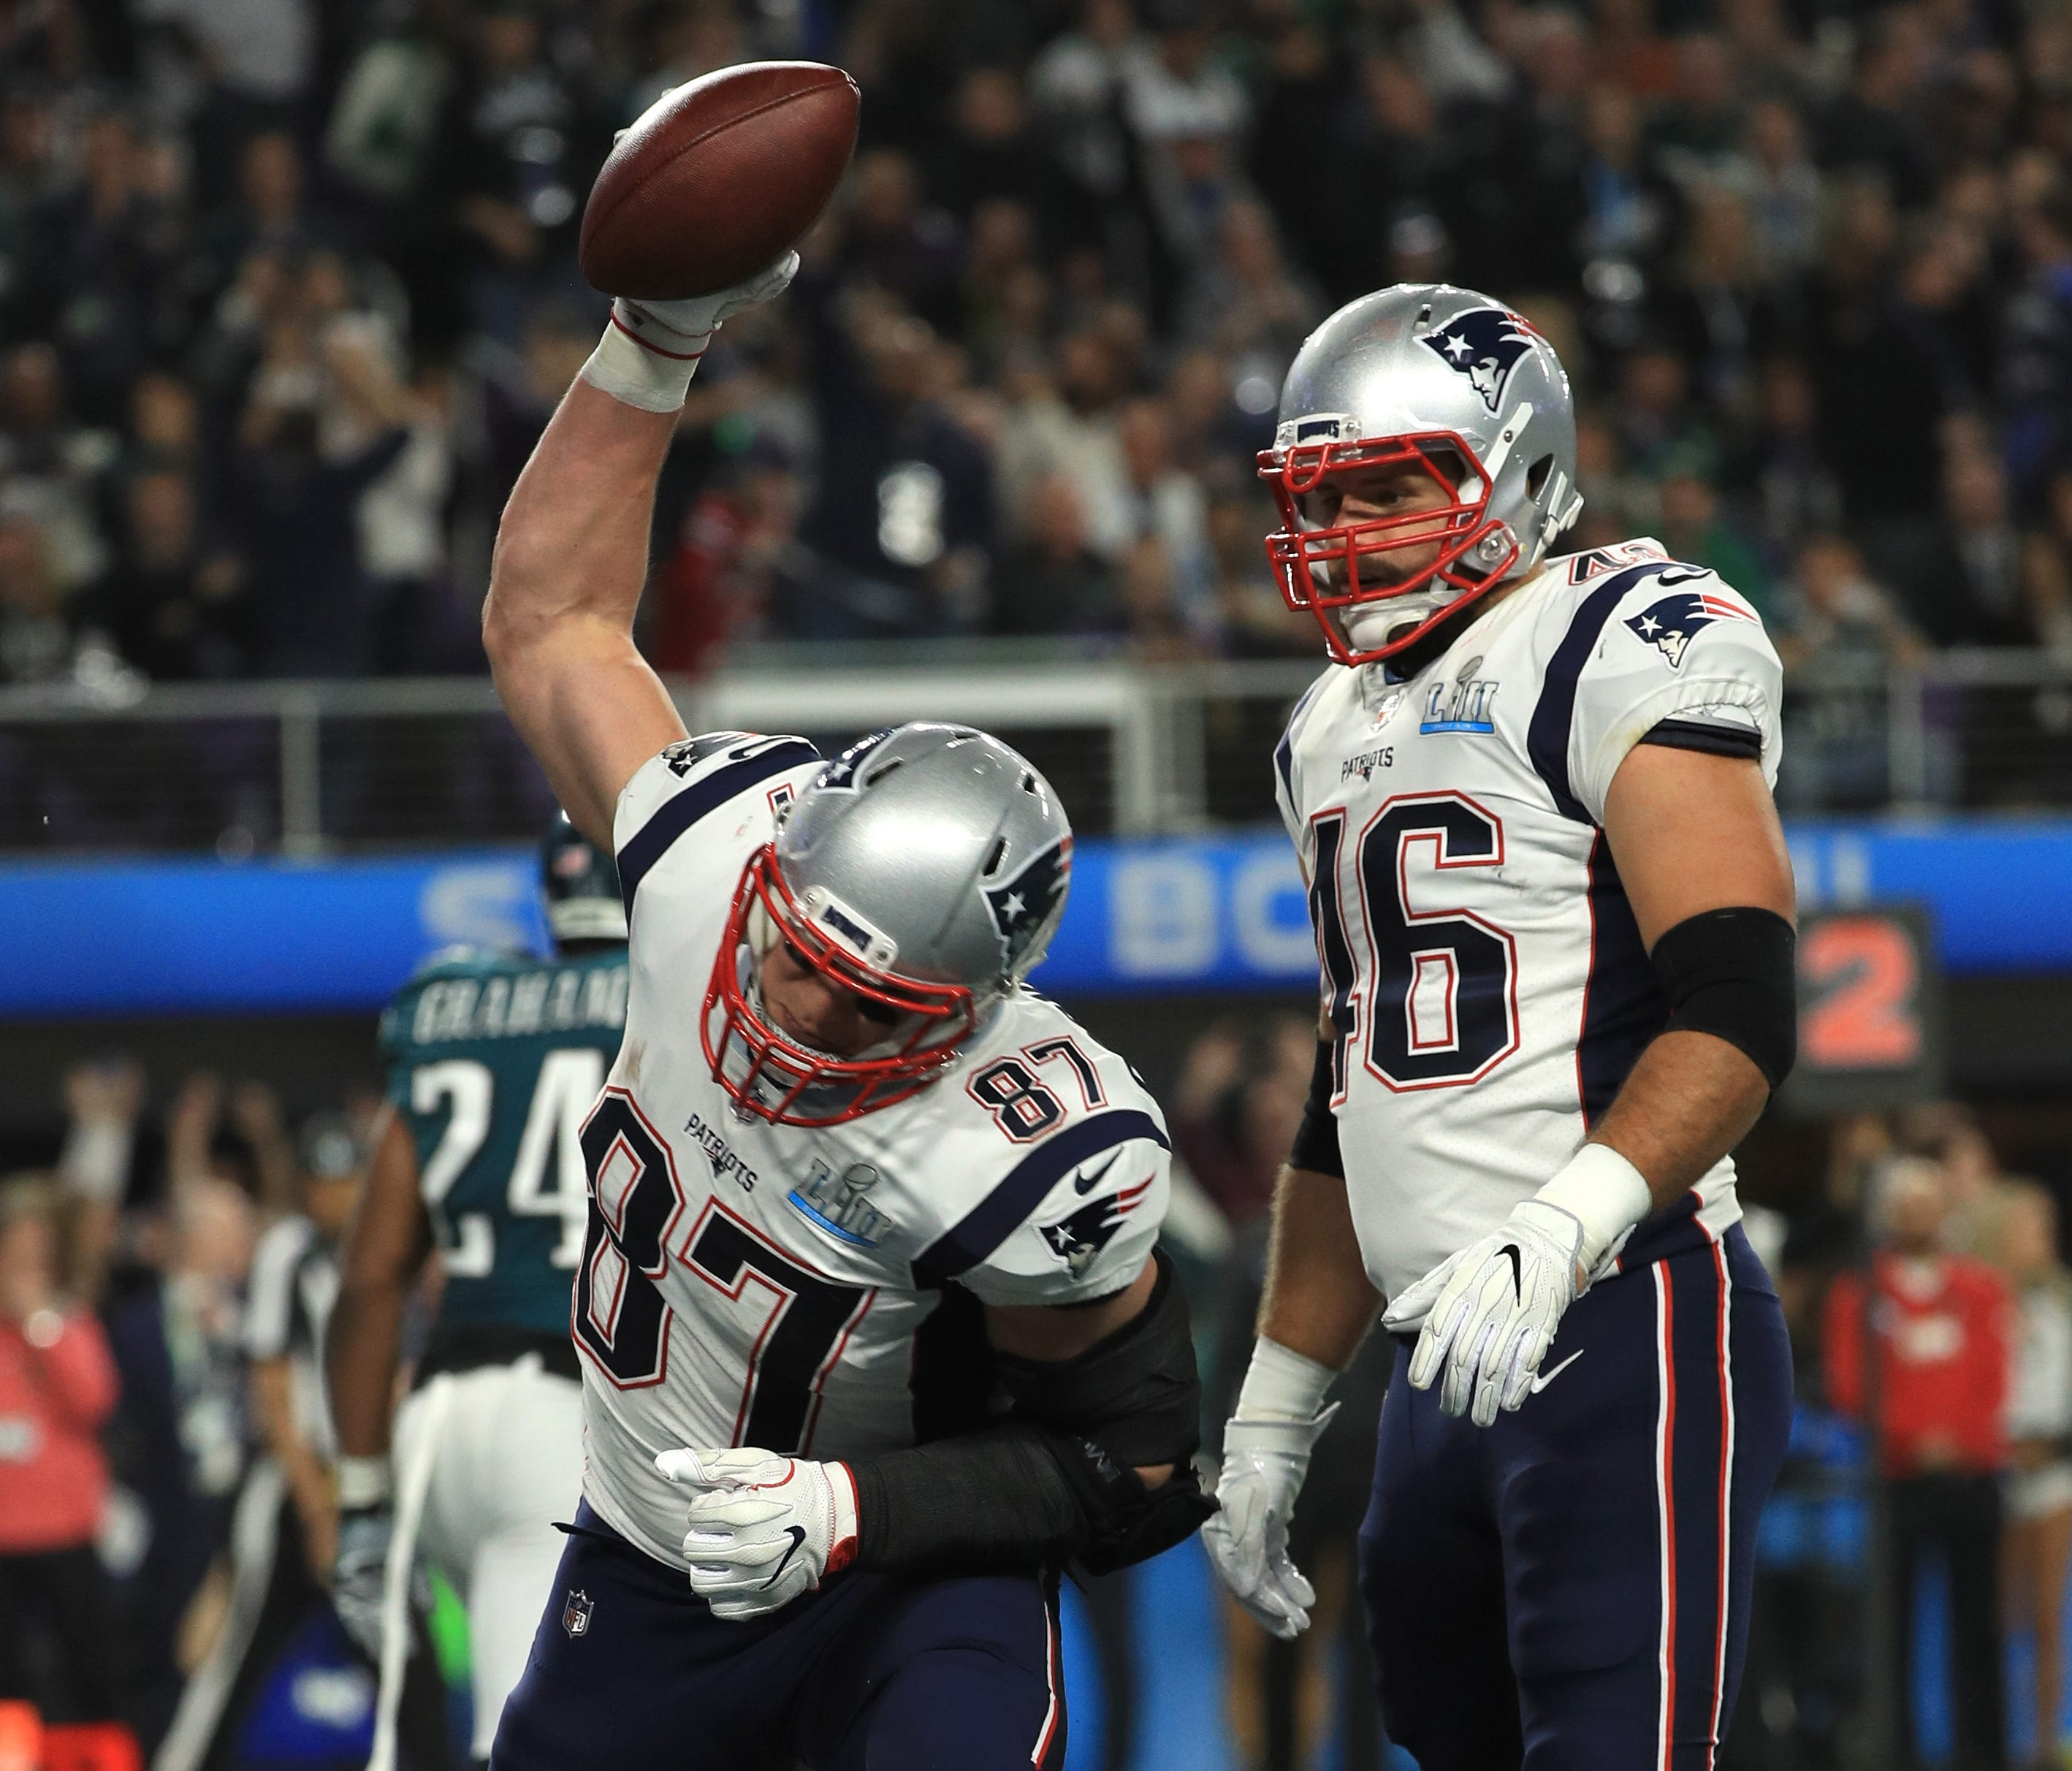 Rob Gronkowski #87 celebrates his 5 yard touchdown reception with James Develin #46 of the New England Patriots against the Philadelphia Eagles during the third quarter in Super Bowl LII at U.S. Bank Stadium on February 4, 2018 in Minneapolis.